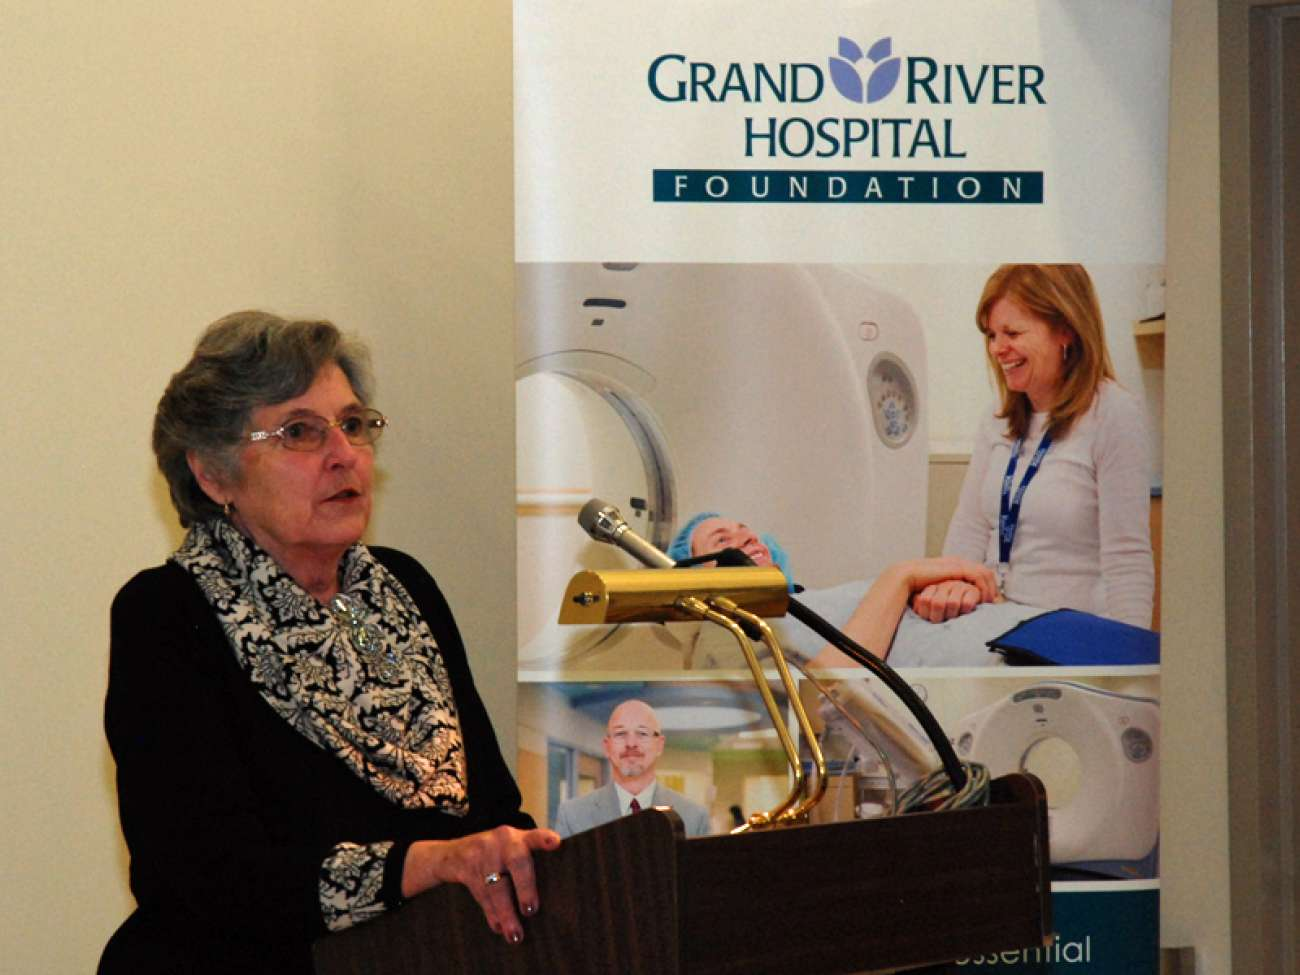 Sandy Weiler speaks about how a CT scan helped save her life during a stroke.